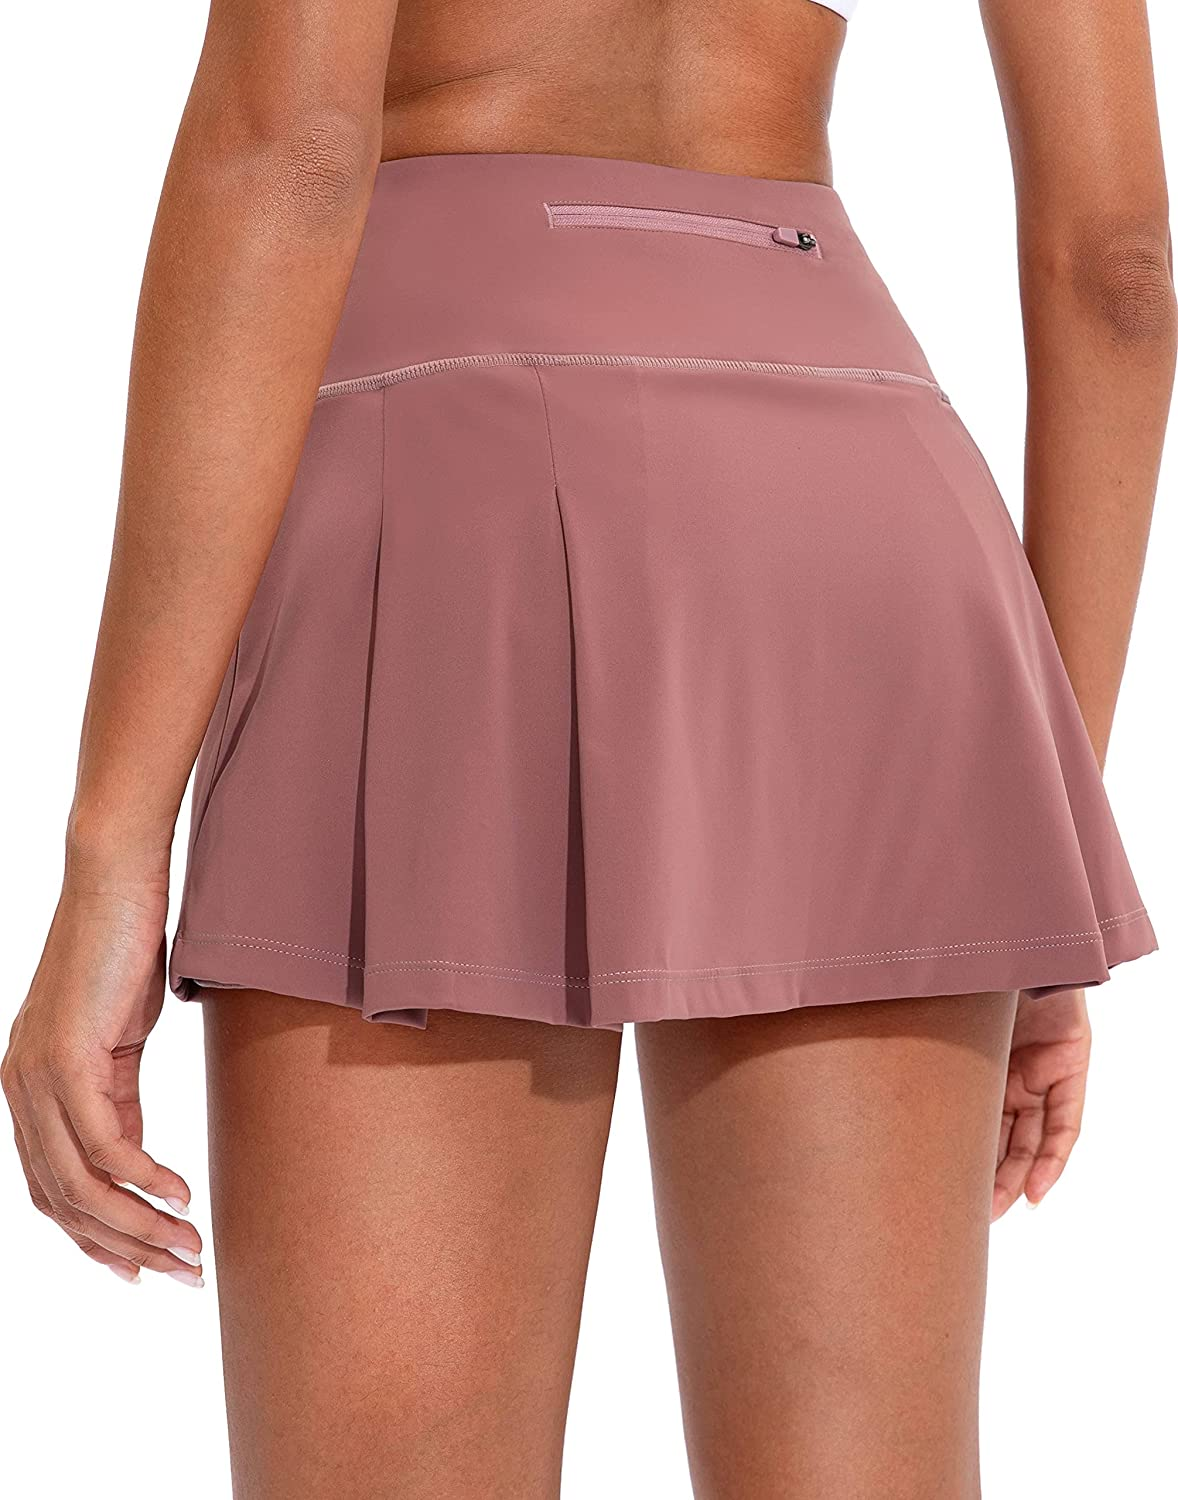 Soothfeel Pleated Tennis Skirt Ranking TOP13 Ranking TOP12 for with Pockets Hi Women Women's